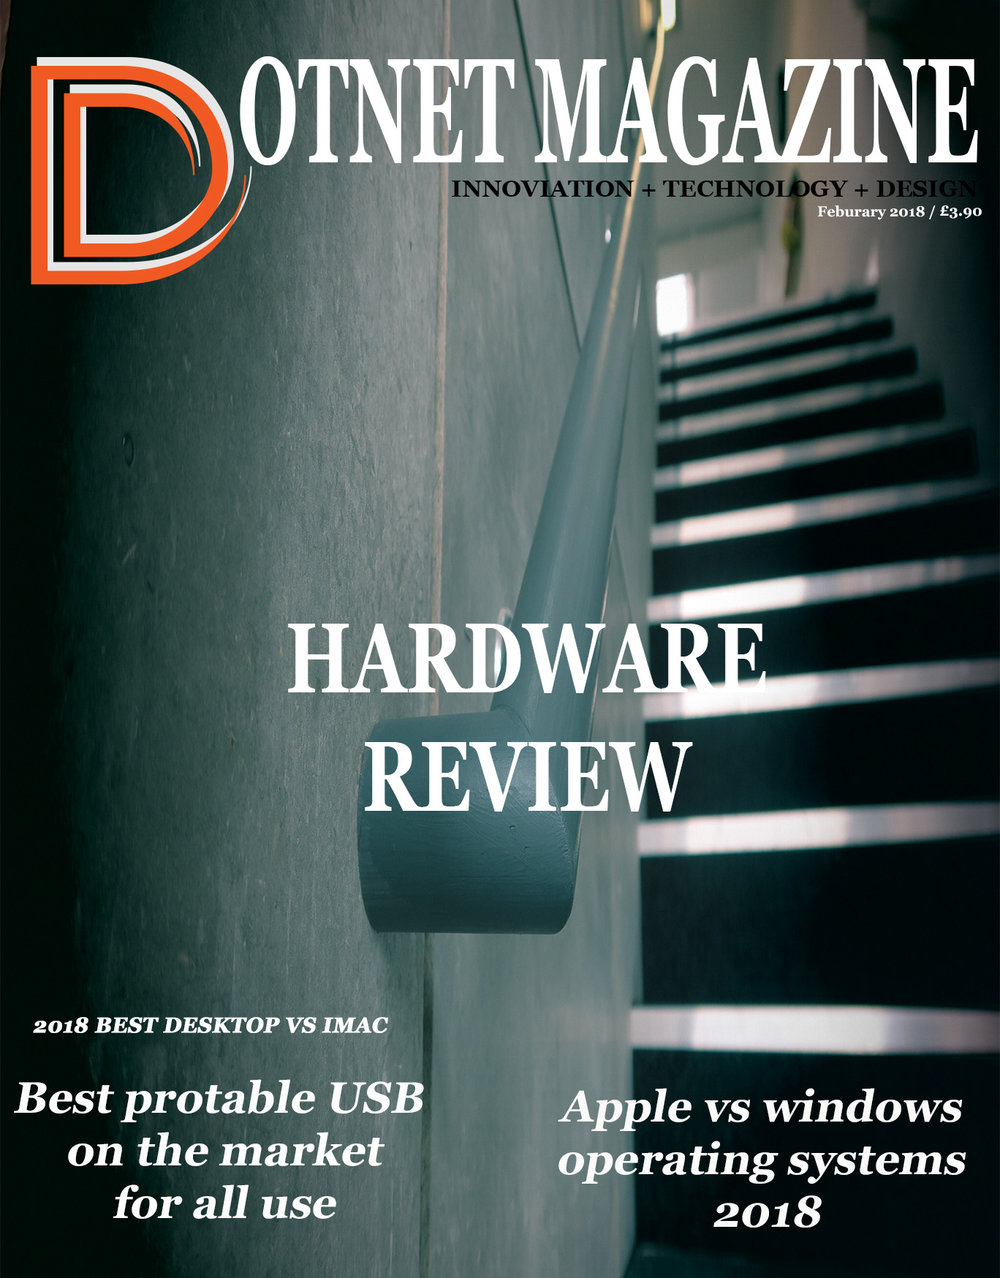 HardwarereView2019 - Coming Soon